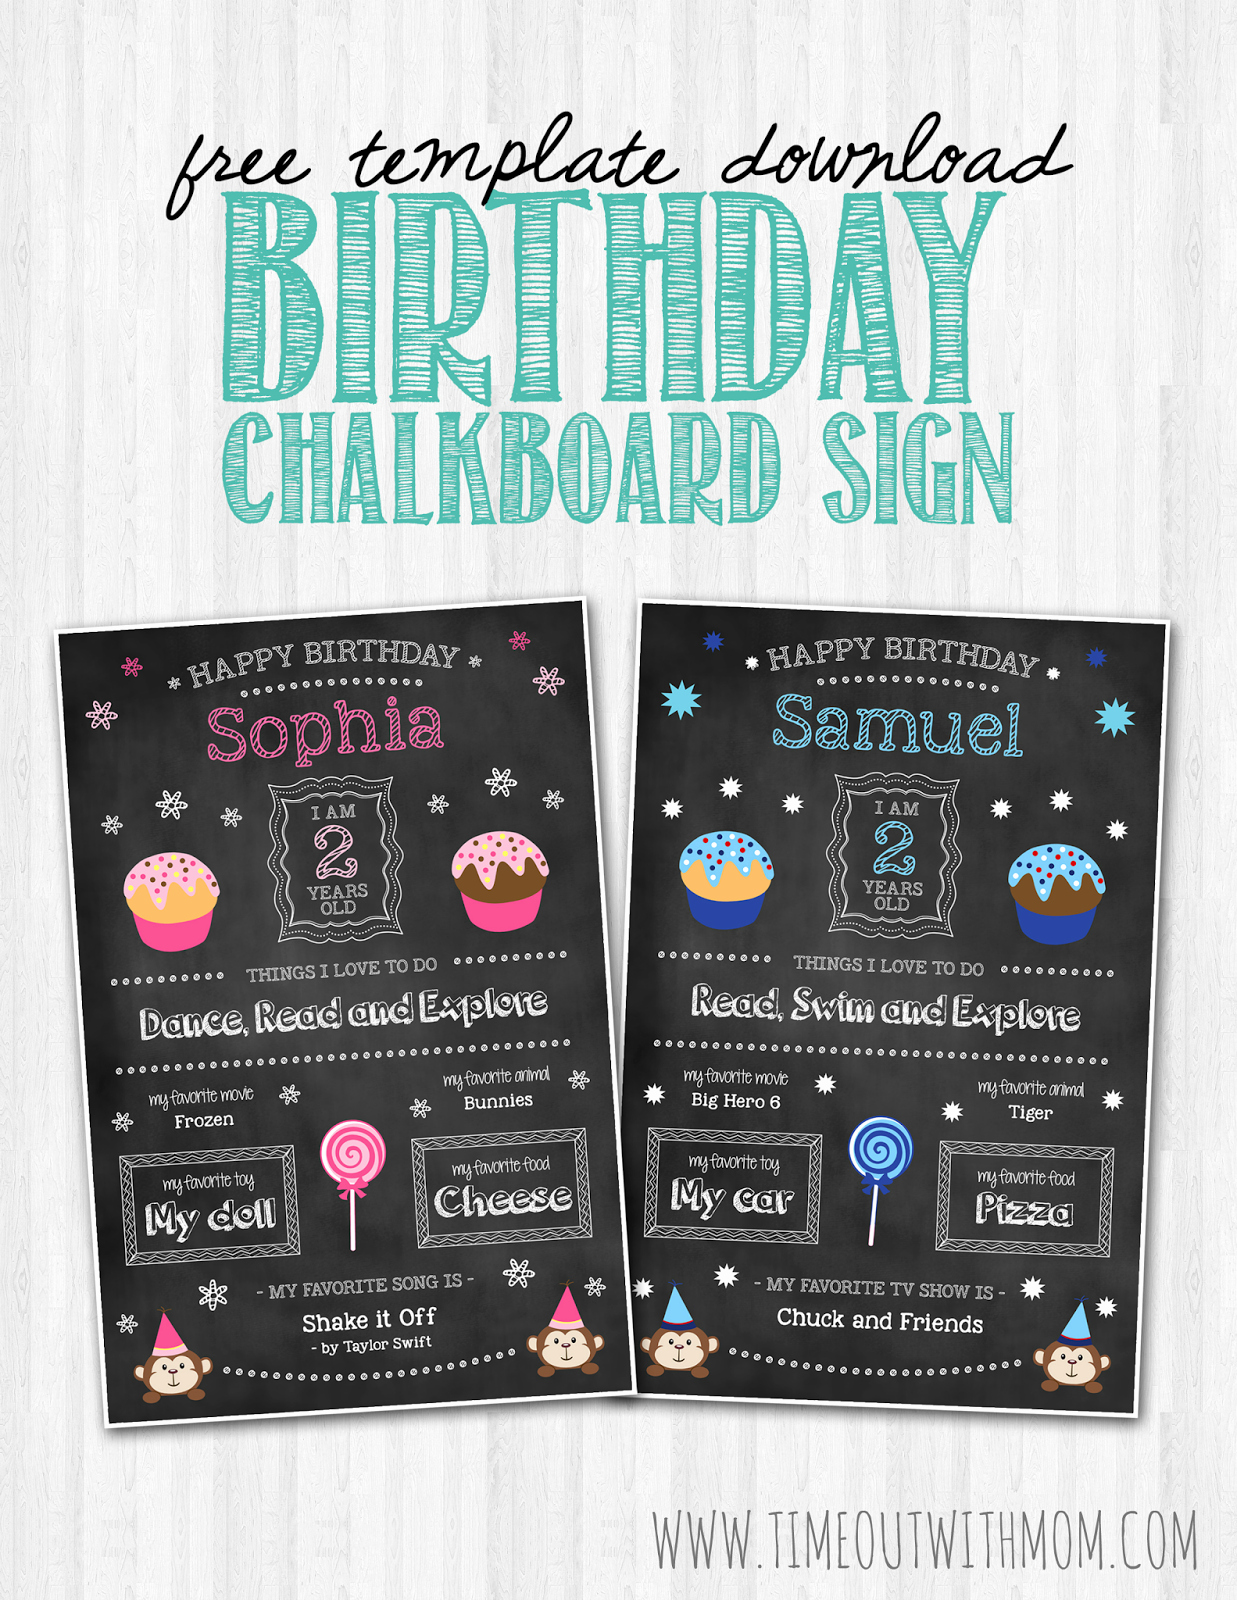 Free Chalkboard Invitation Templates Lovely Birthday Chalkboard Sign Template and Tutorial